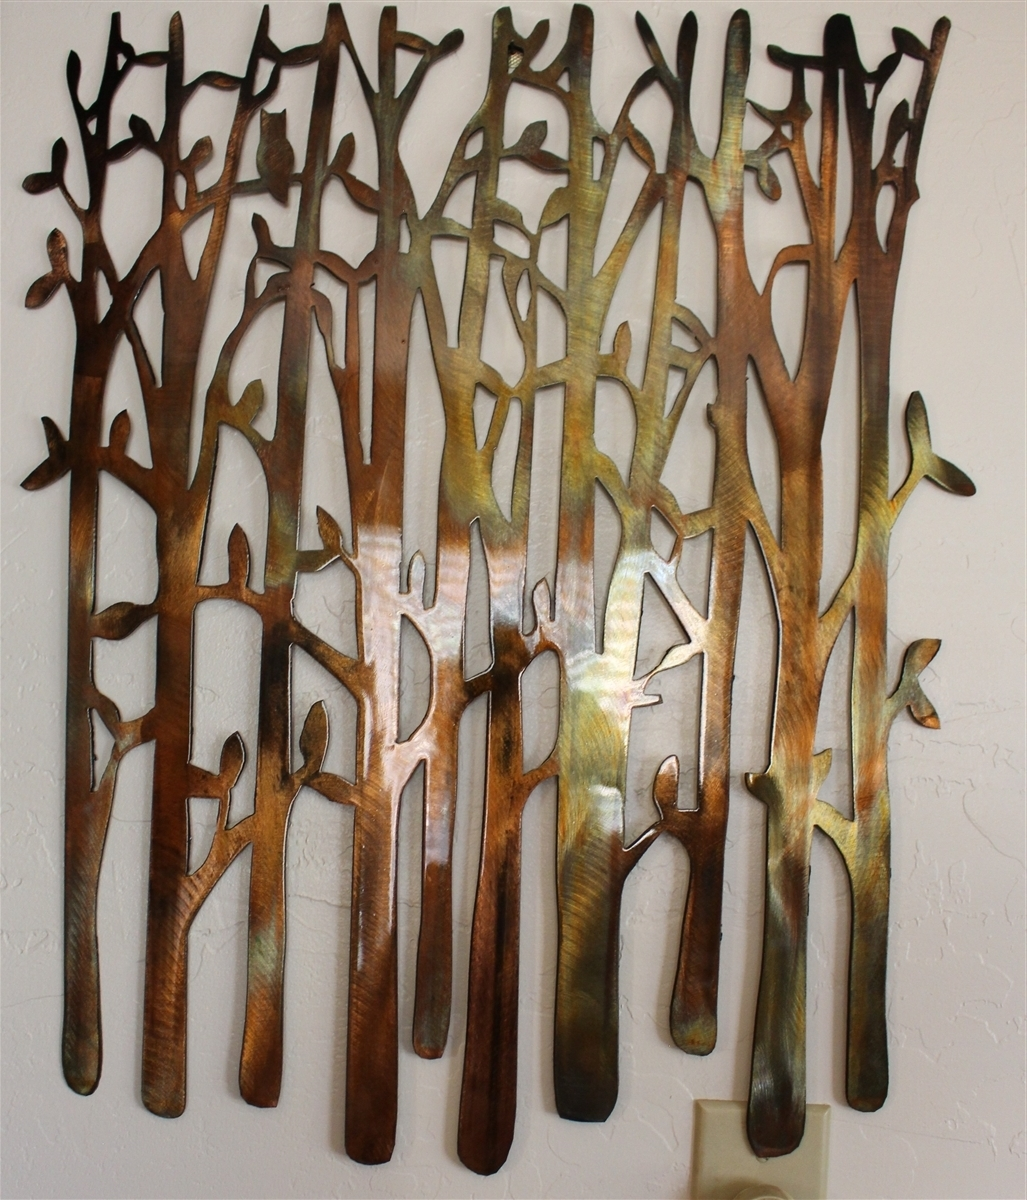 Birch Tree, Birch Tree Metal Art, Bamboo, Bird In The Trees, Bird With Newest Metal Wall Accents (Gallery 8 of 15)